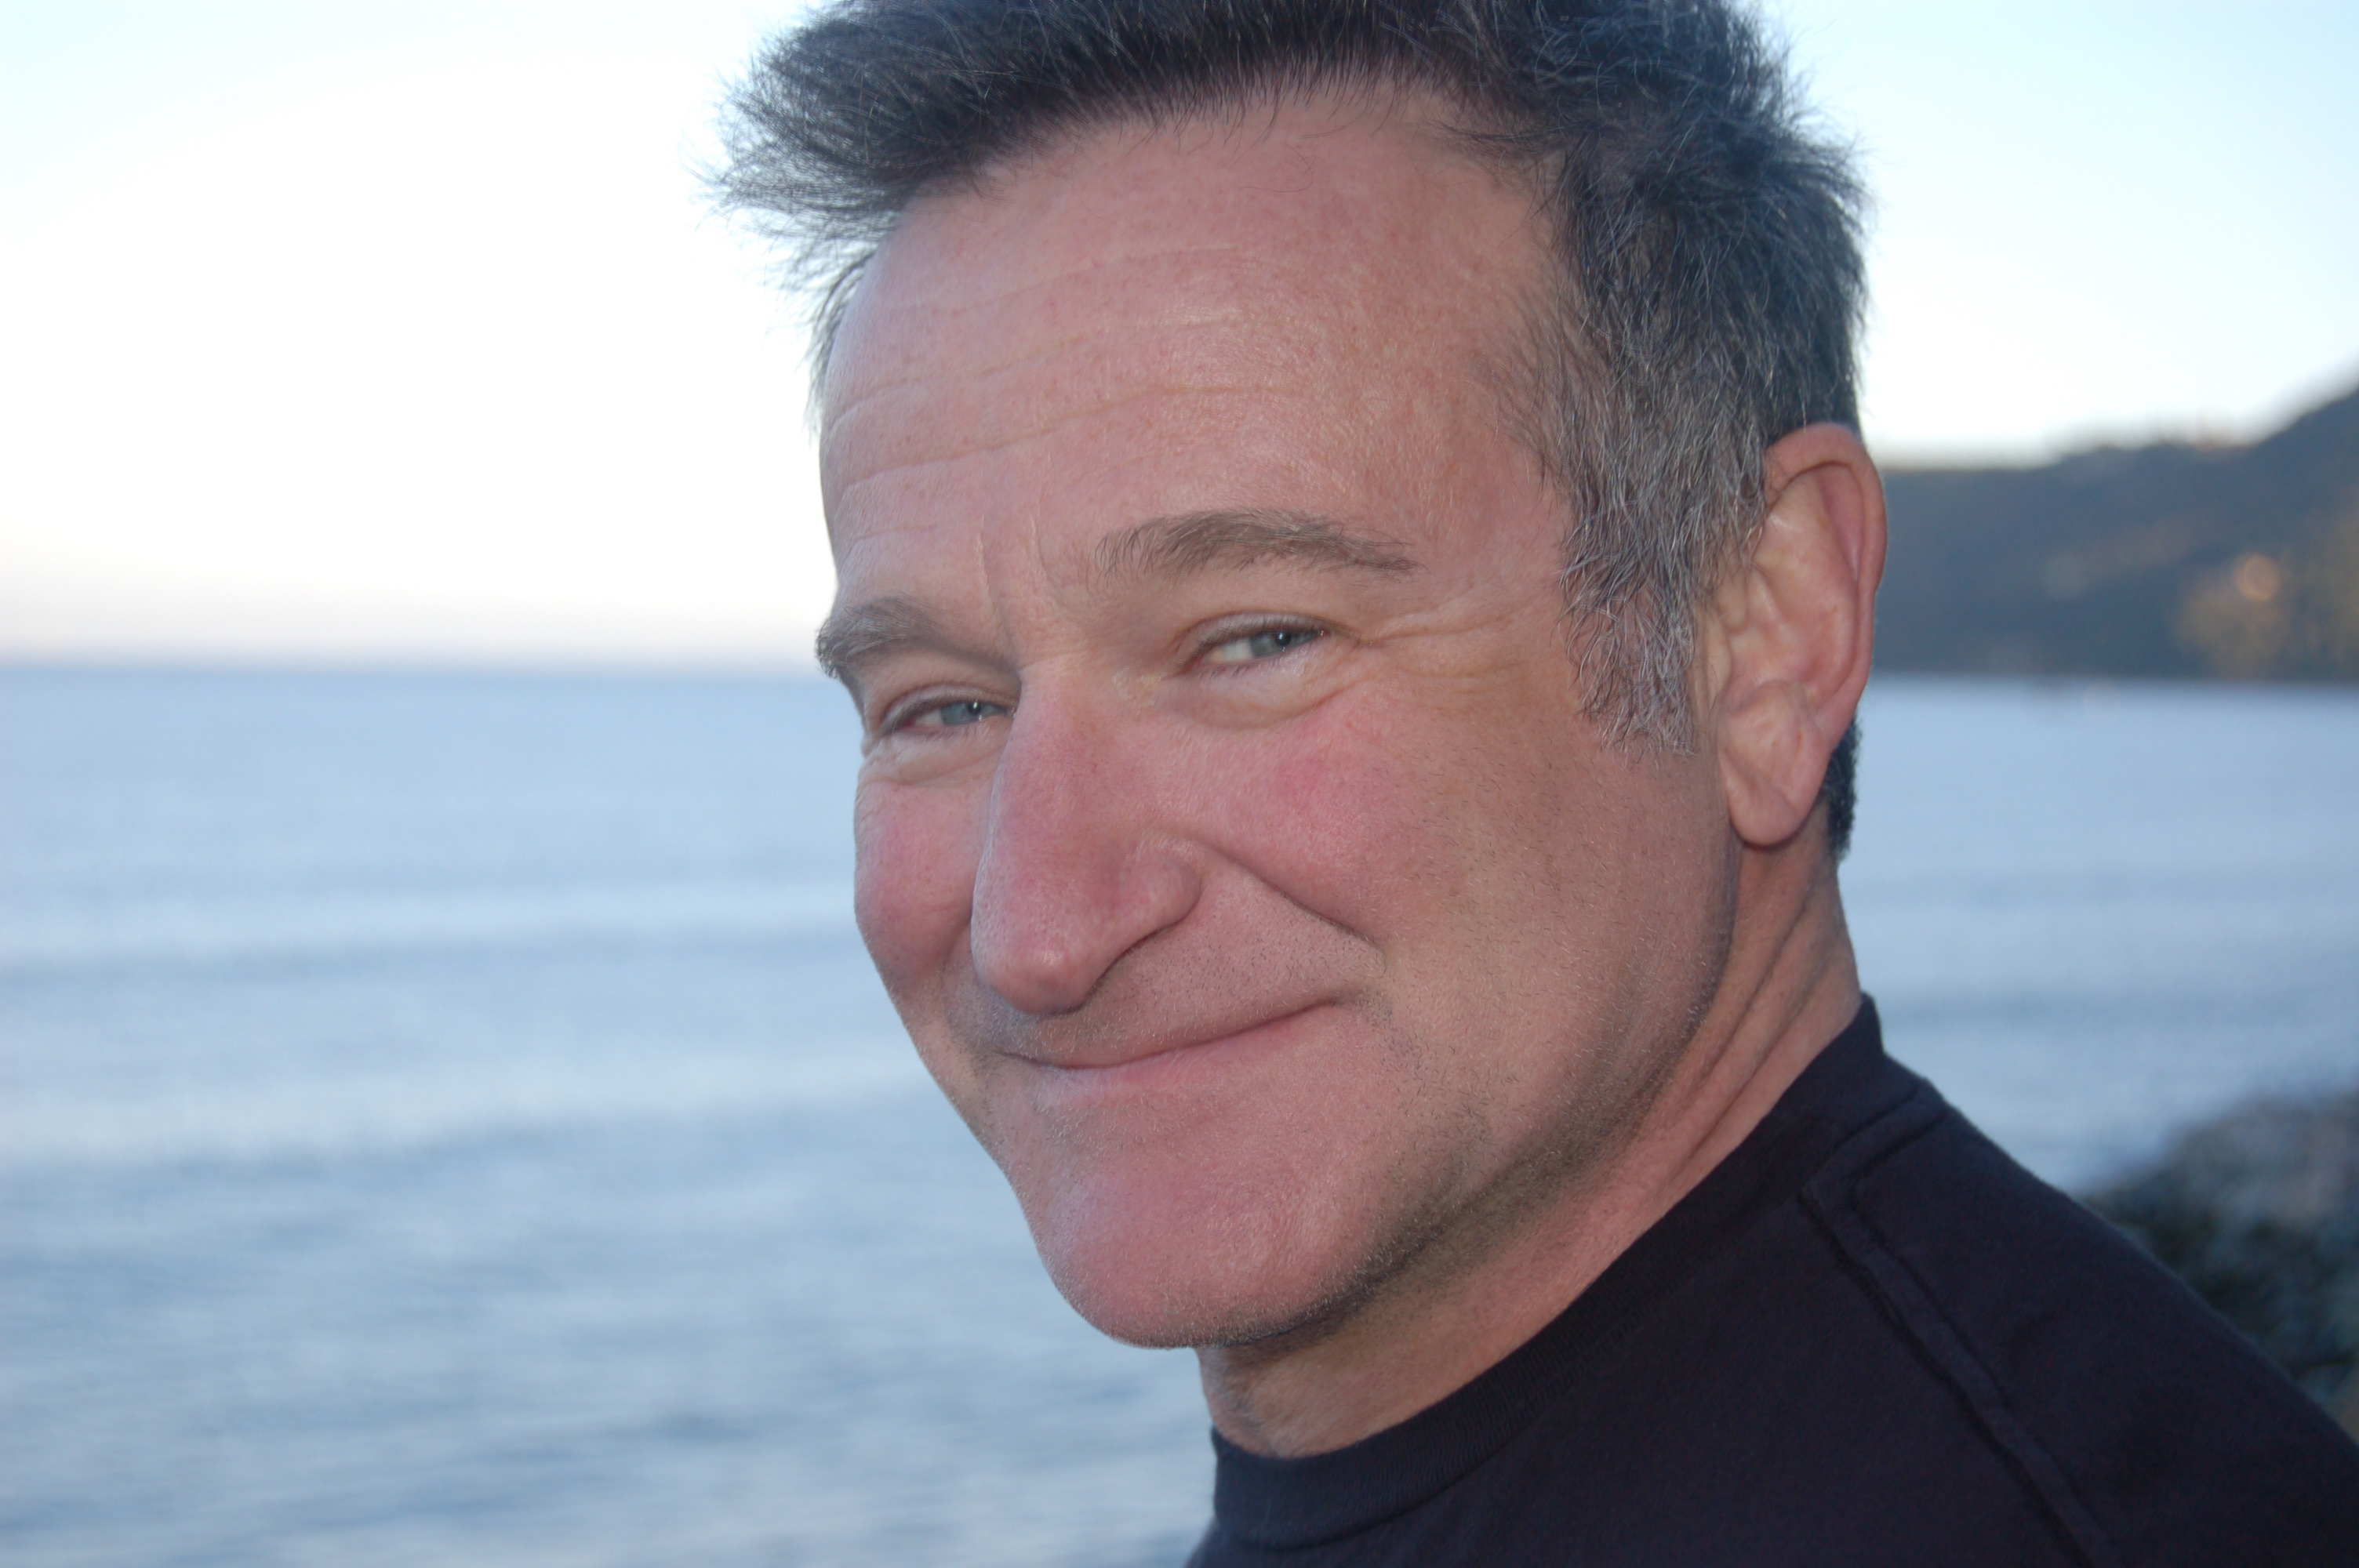 robin-williams-actor-muerte-11-agosto-nota-informacion